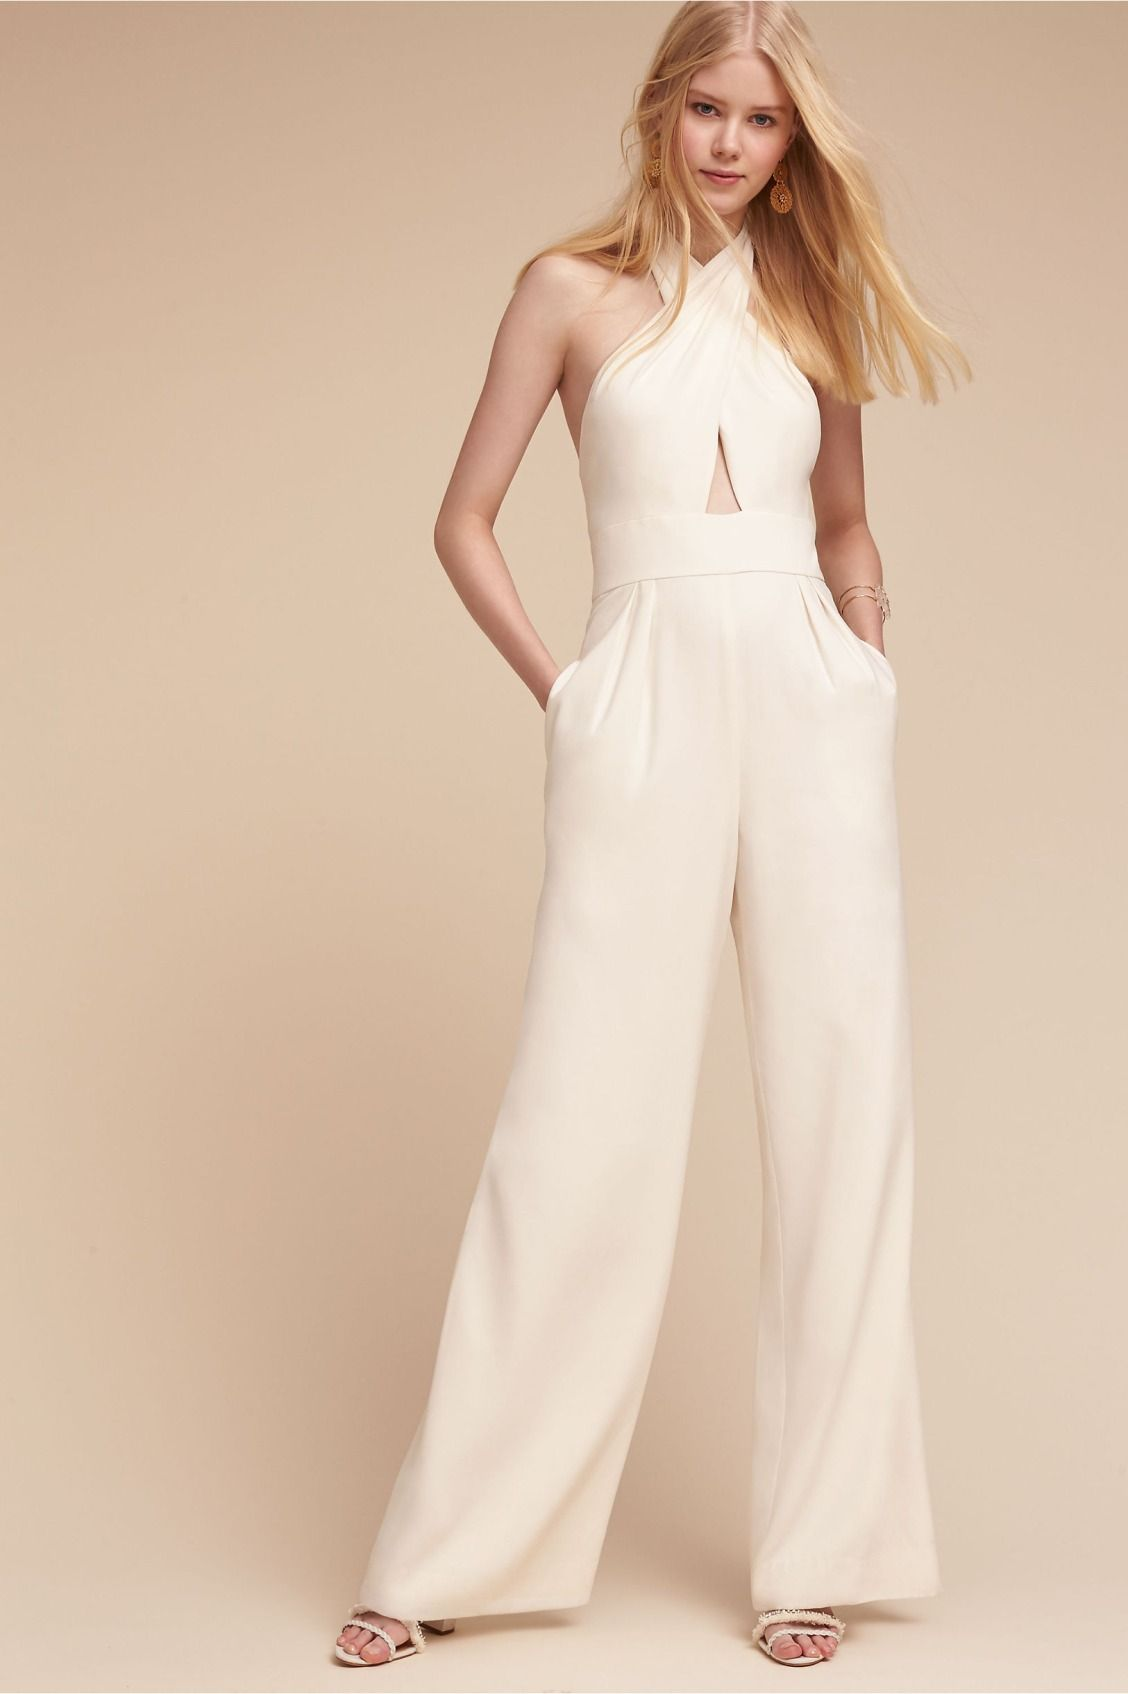 daring yet sophisticated | Kathryn Jumpsuit from BHLDN | Honeymoons ...